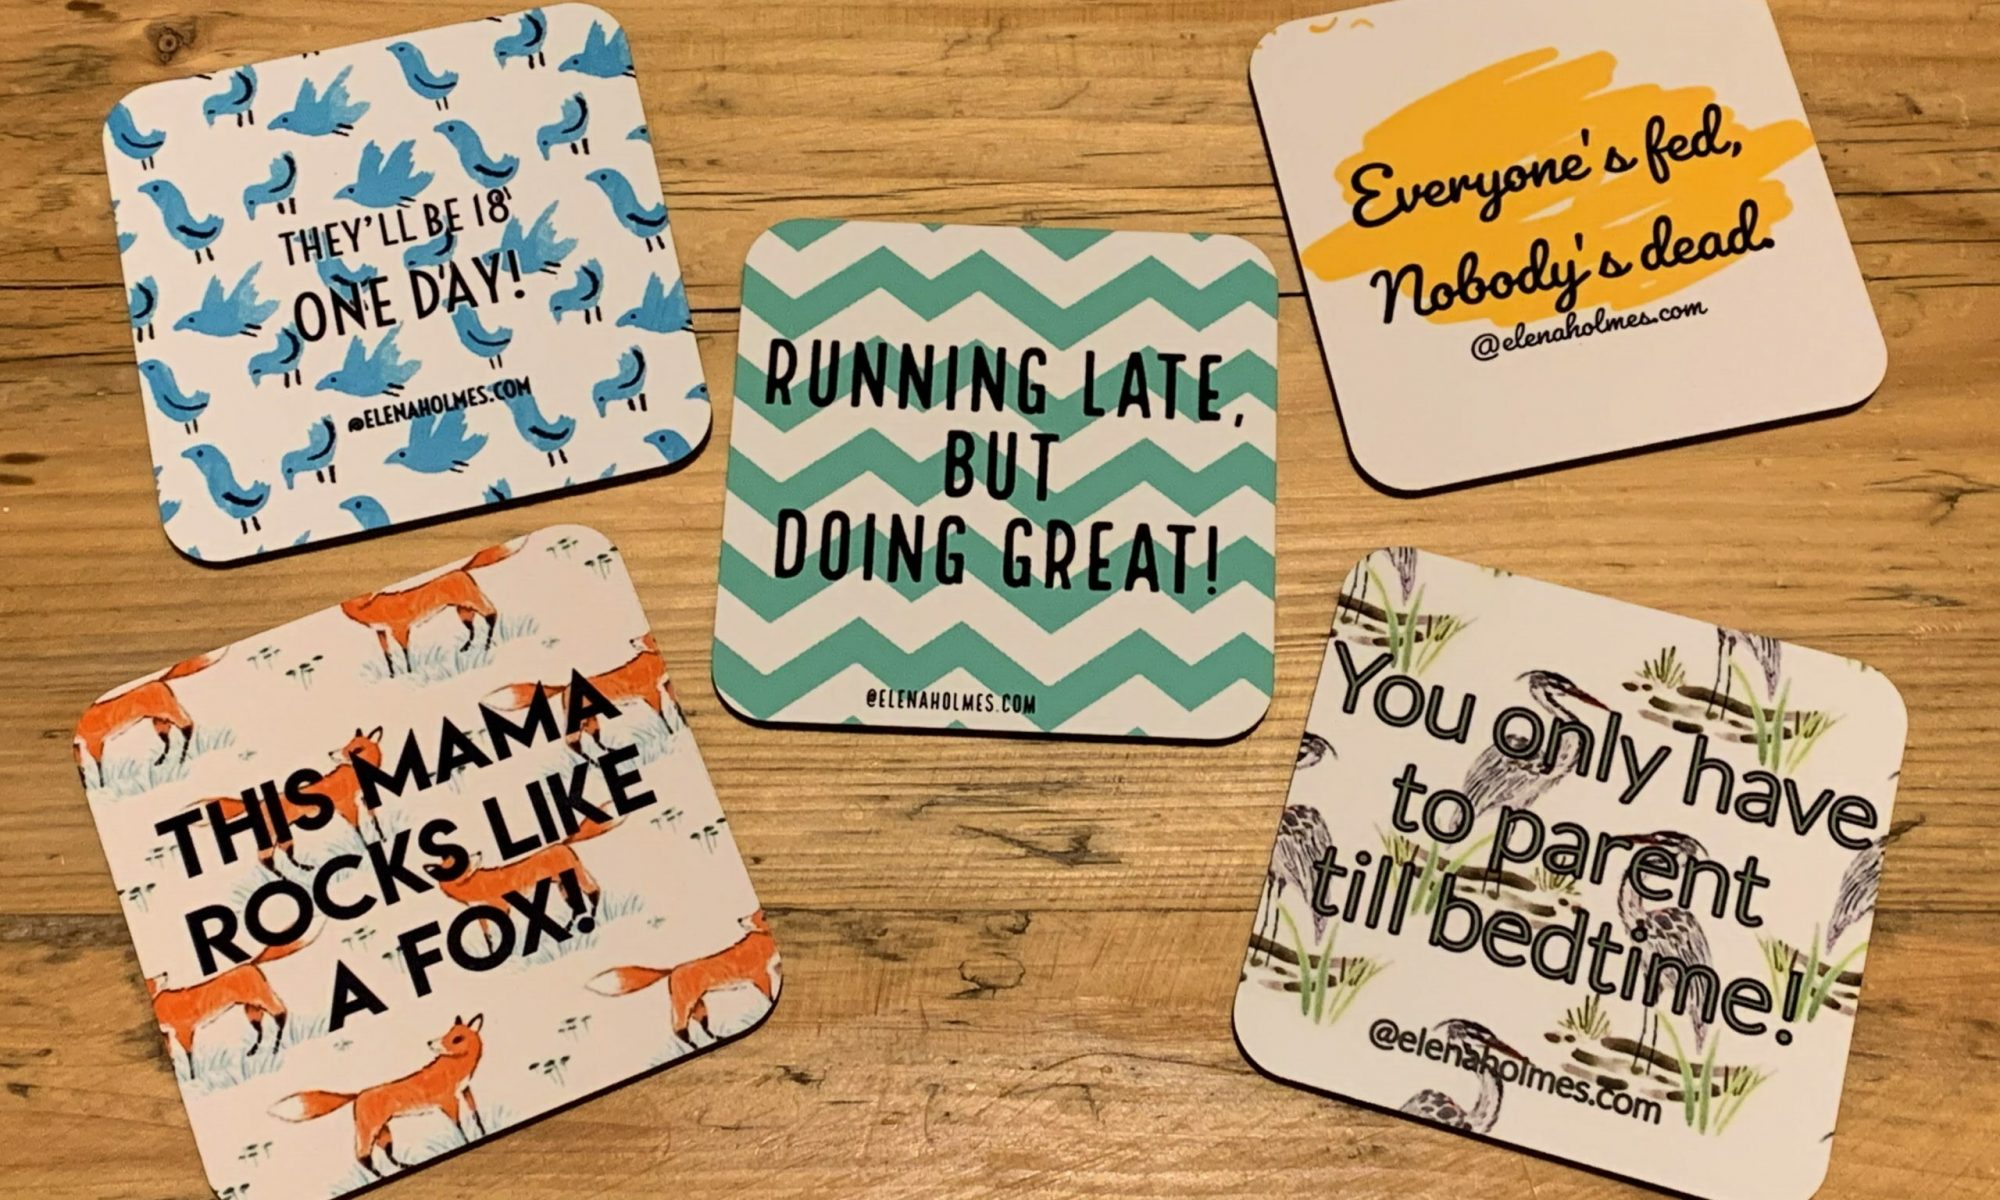 All of the coaster designs